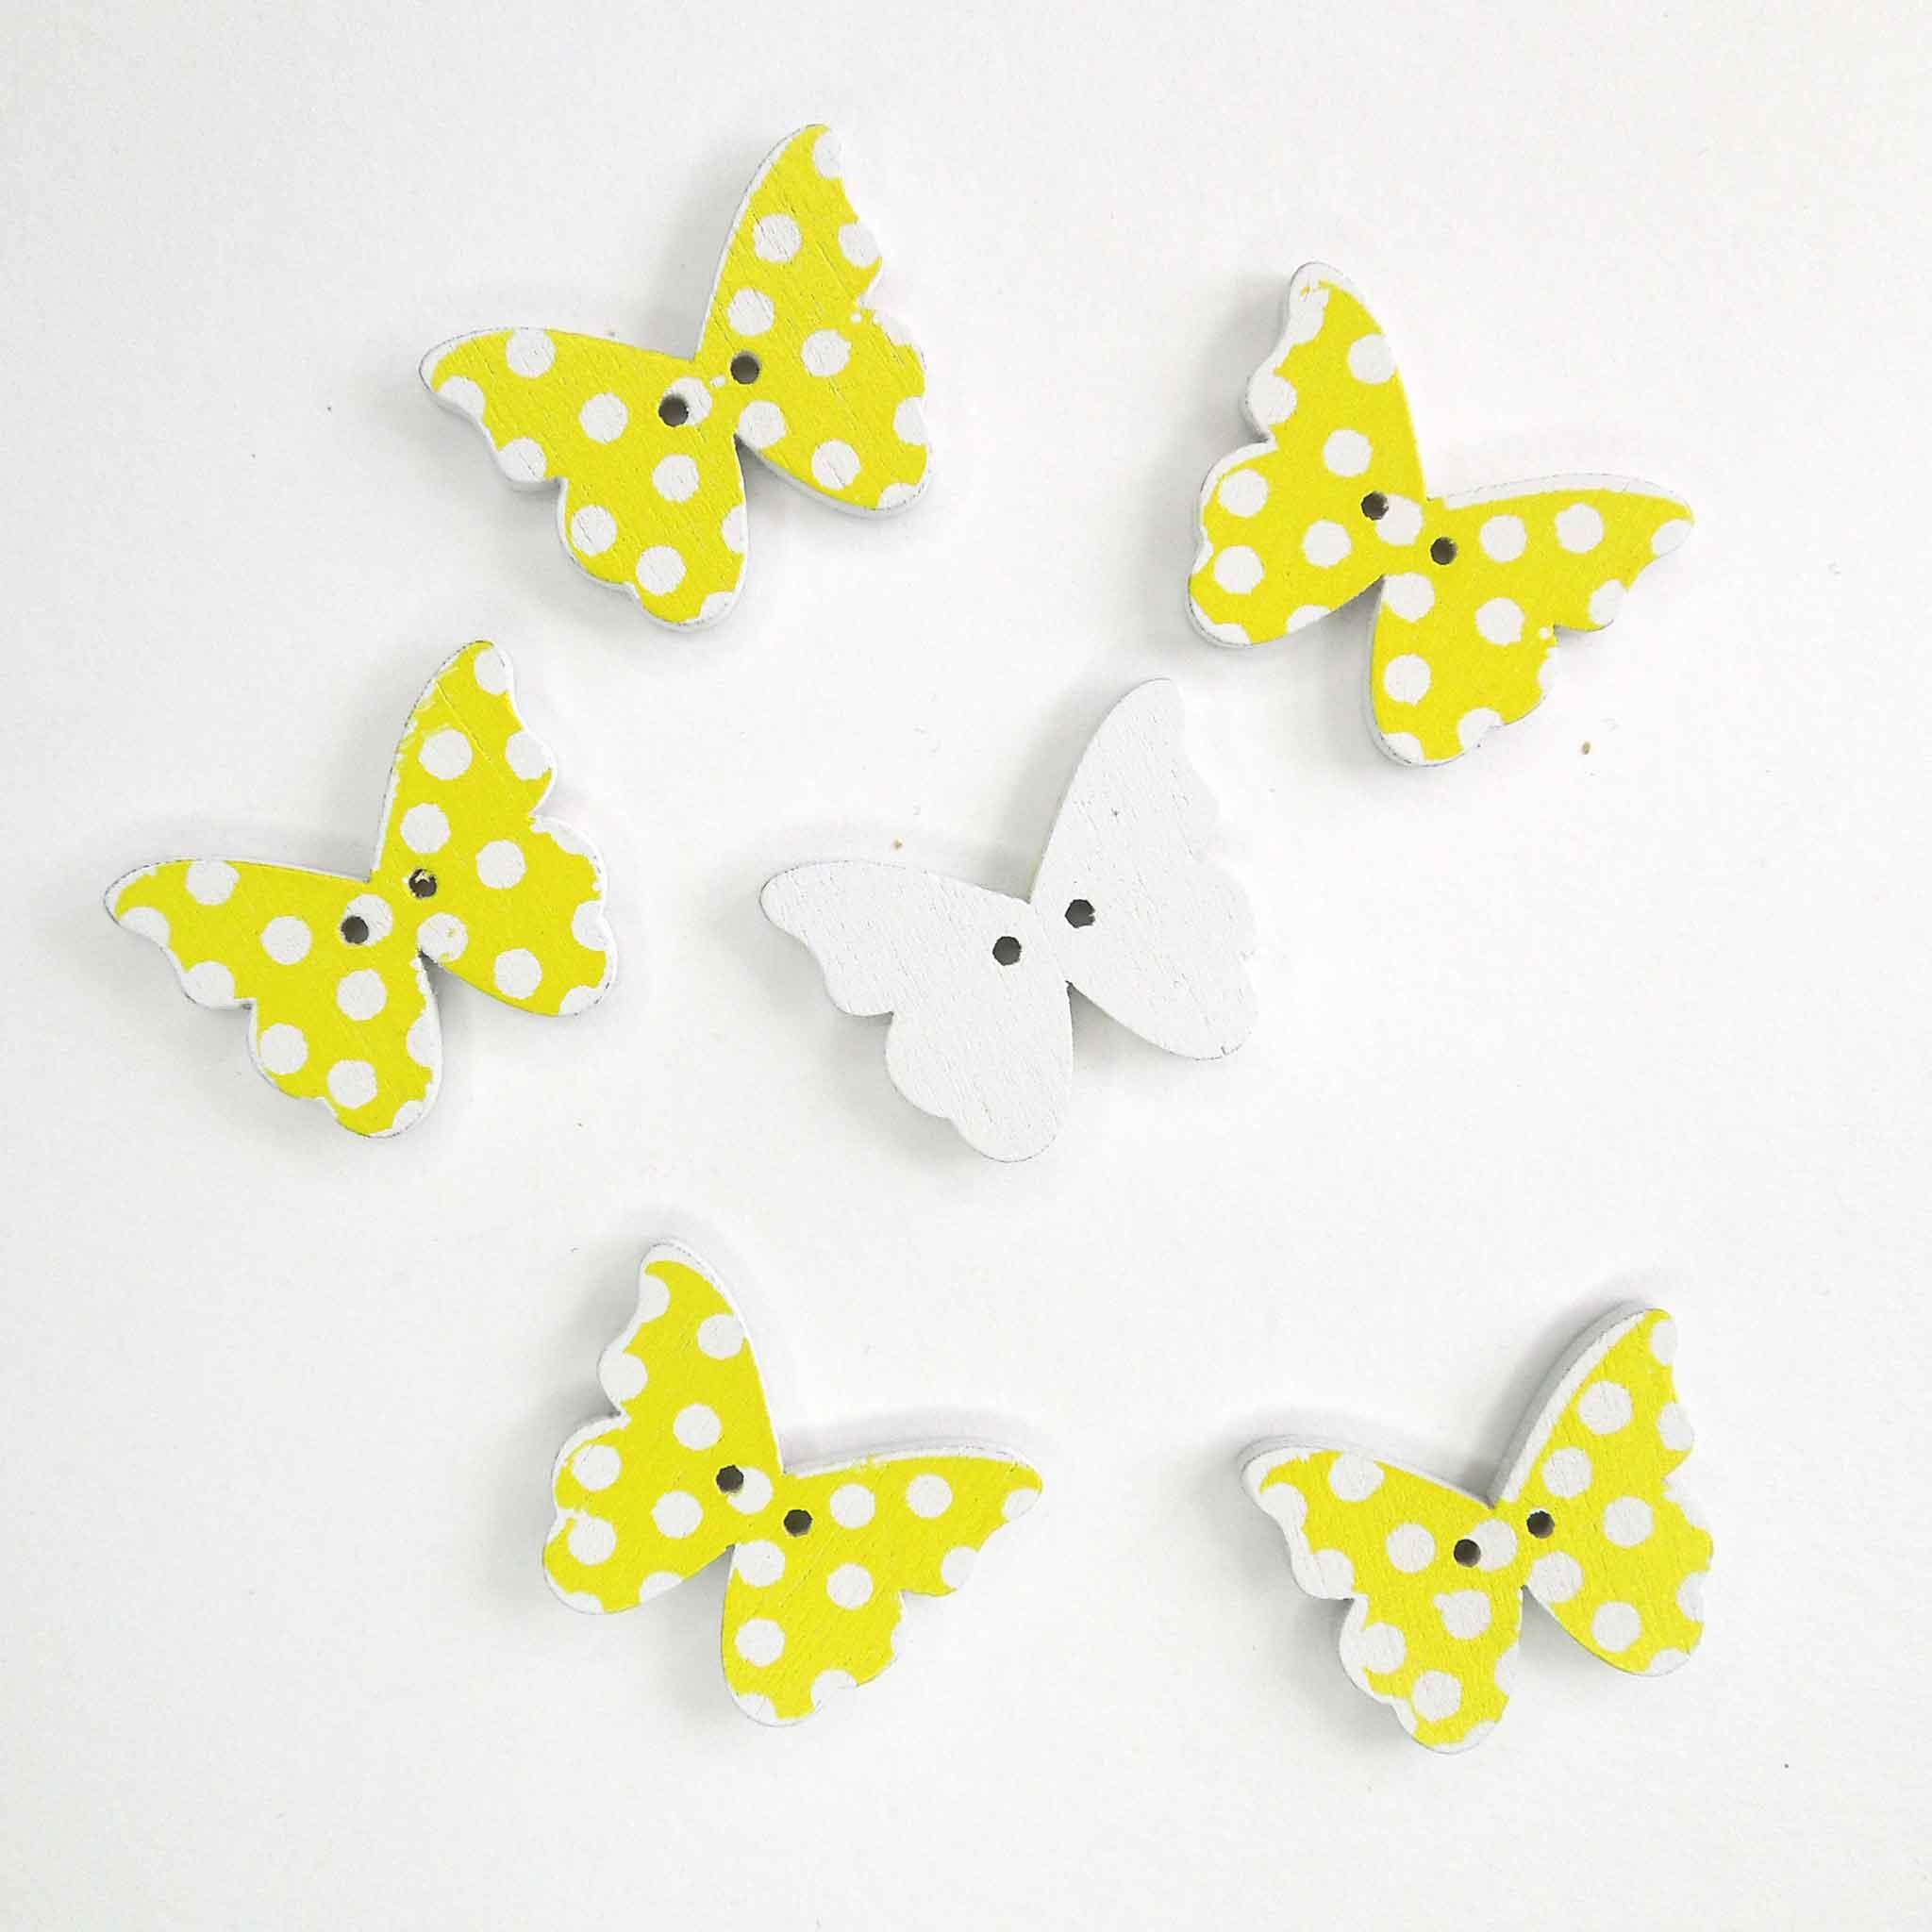 Yellow Butterfly Wood Buttons, 2 Holes, Pack of 6 Buttons